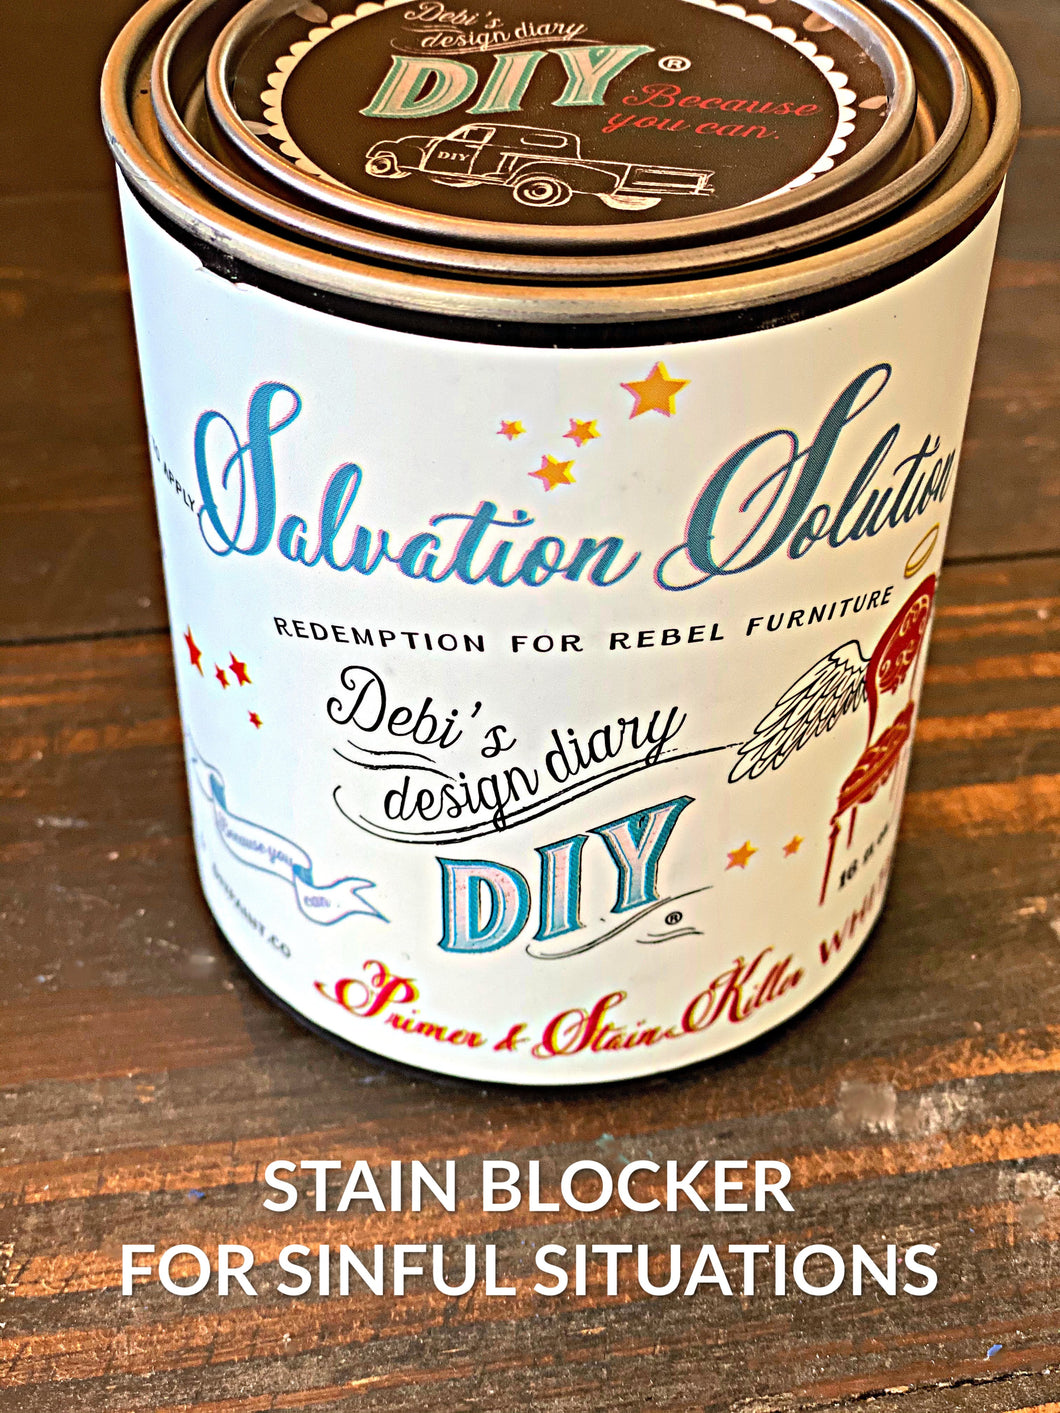 DIY Wood Stain Blocker - Salvation Solution